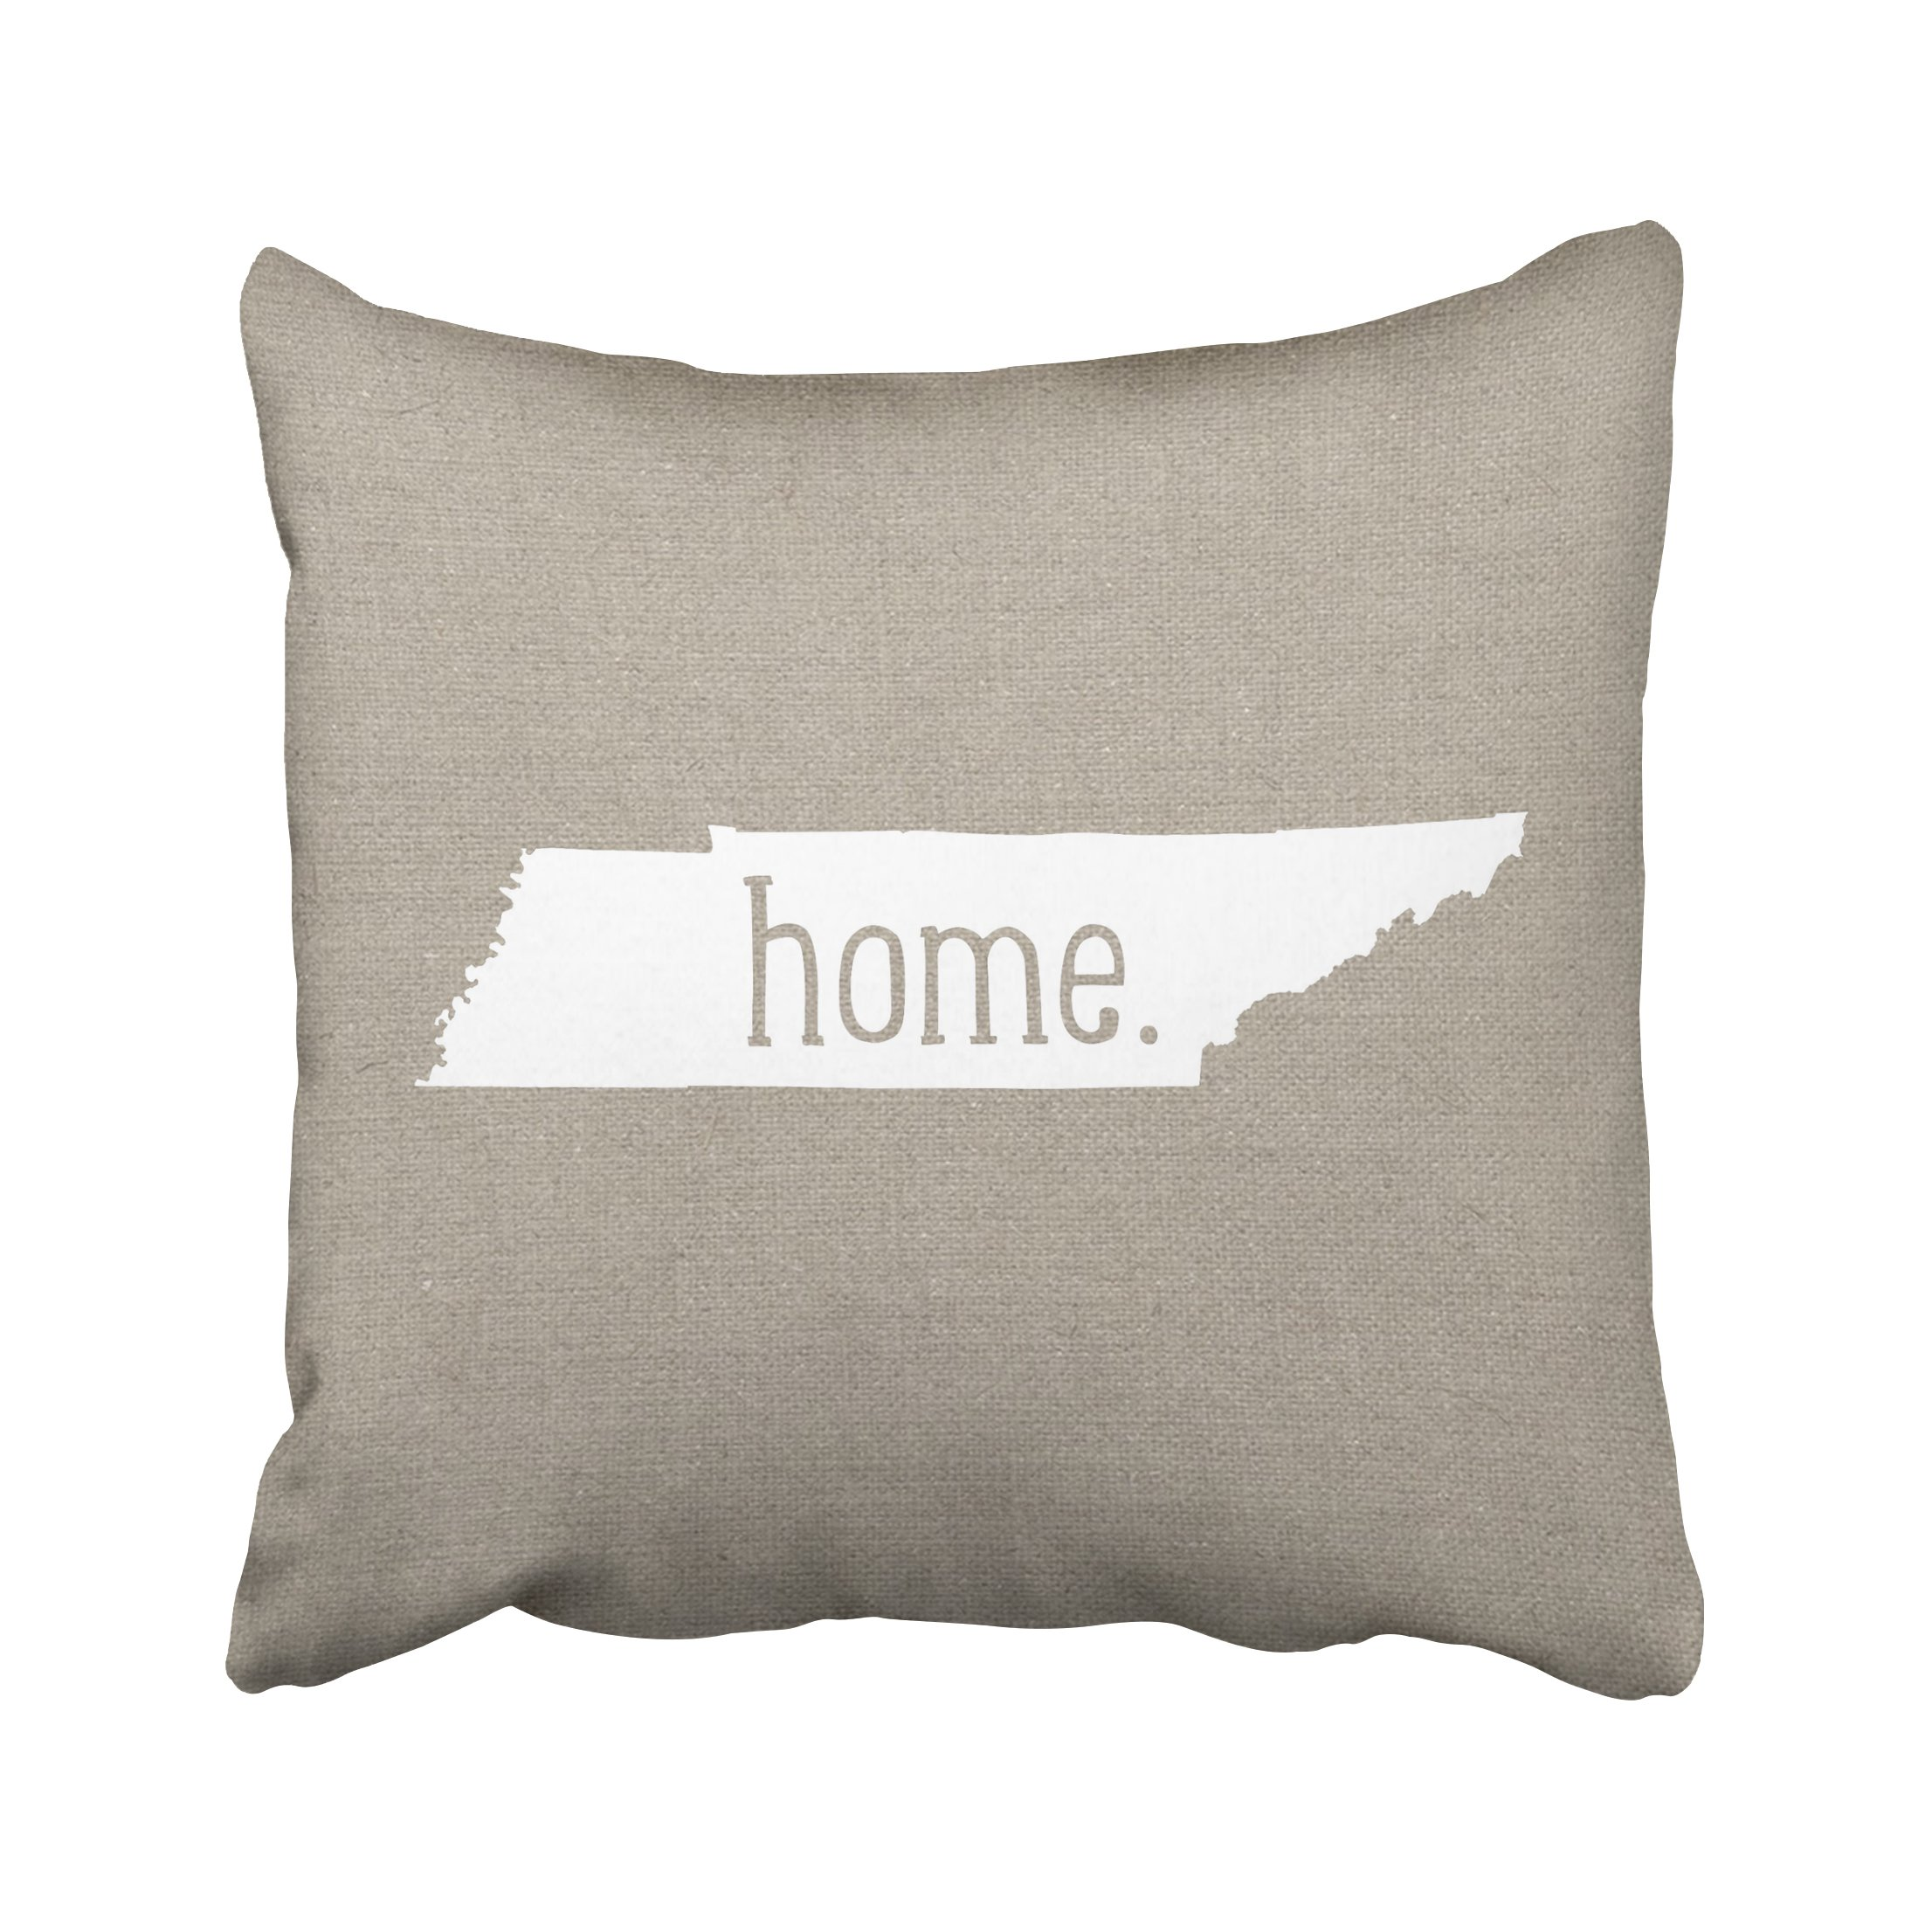 ONELZ Tennessee Home State Square Decorative Throw Pillow Case, Fashion Style Zippered Cushion Pillow Cover (20X20 inch)